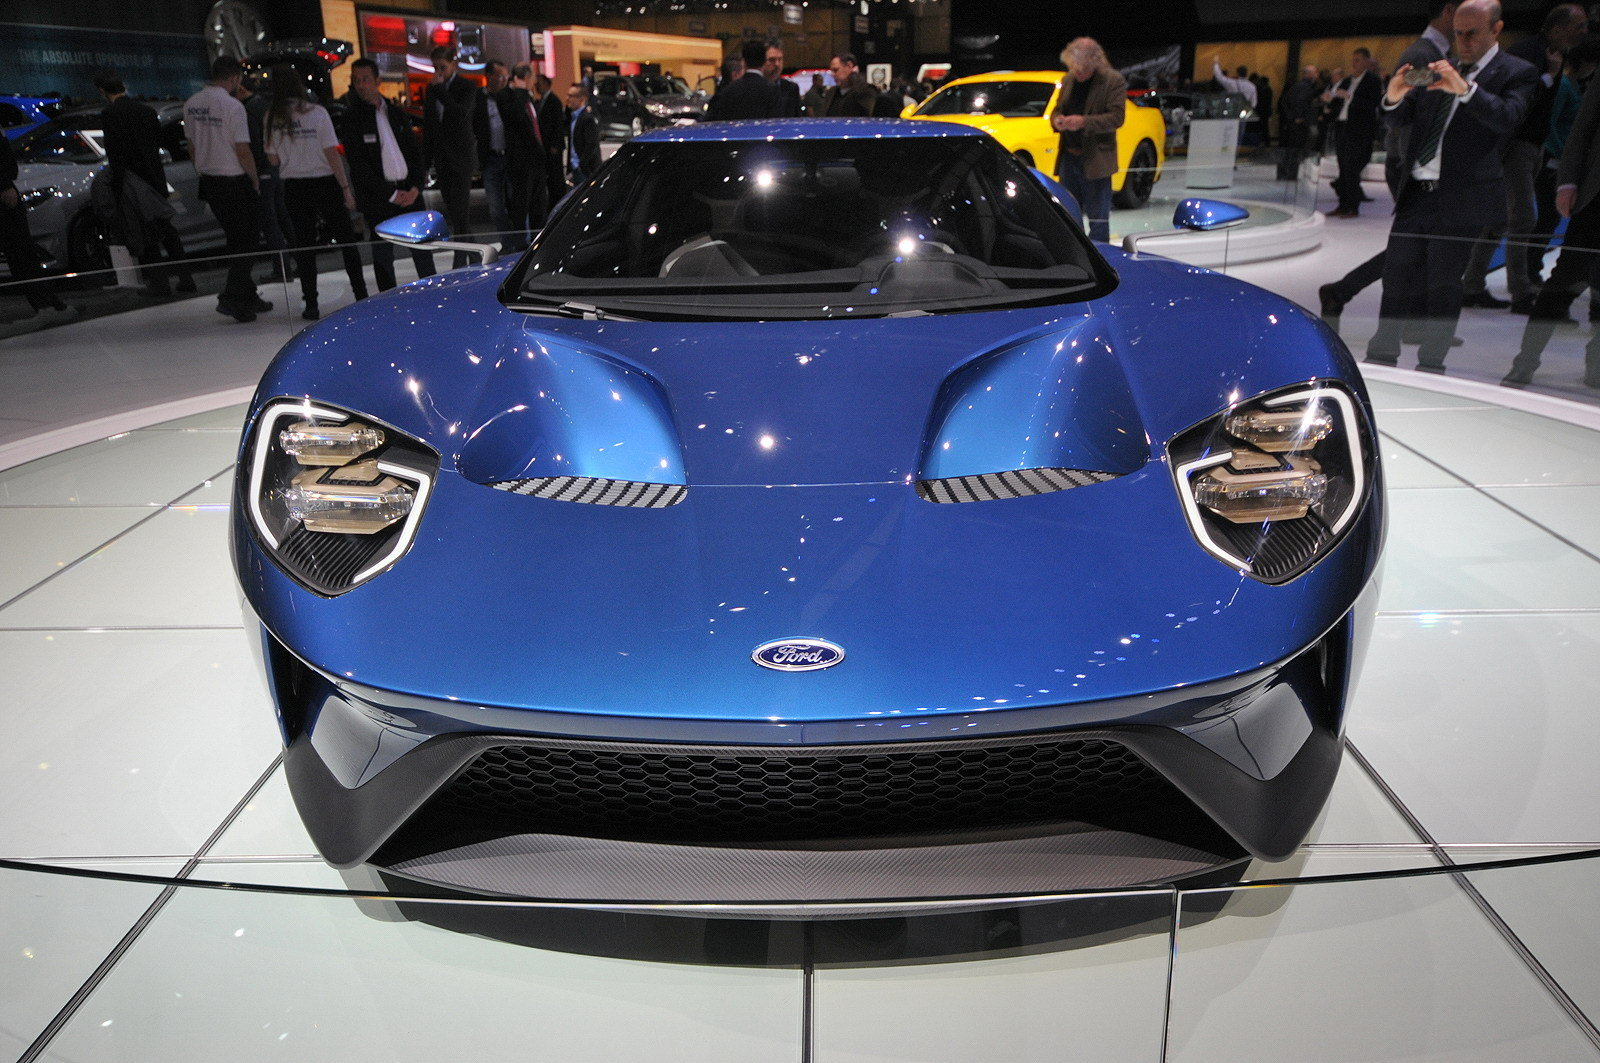 2017 ford gt picture 622185 car review top speed for Garage ford paris 13